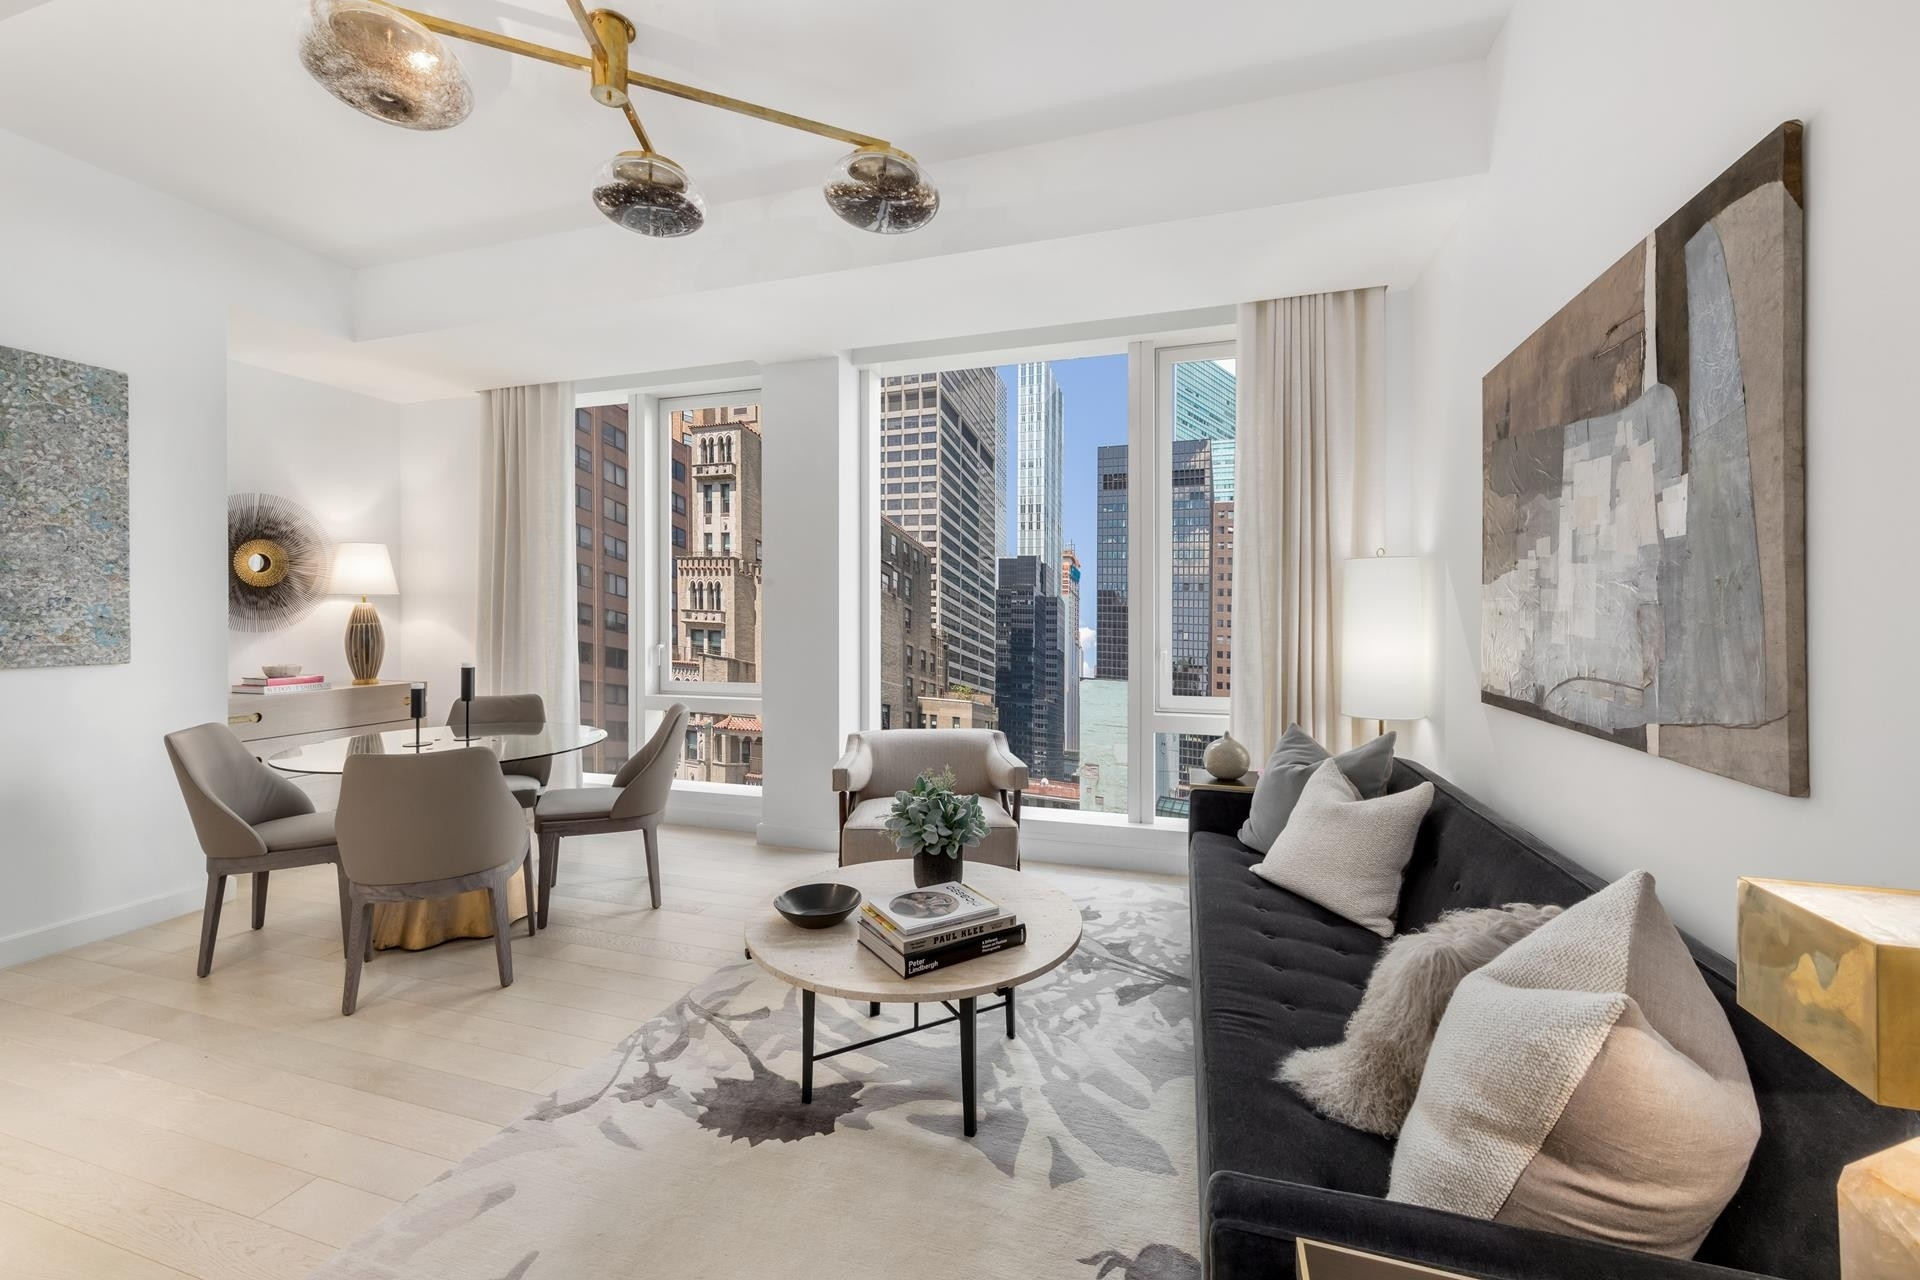 Property à The Centrale Condo, 138 E 50TH ST , 16D Midtown Manhattan, New York, NY 10022